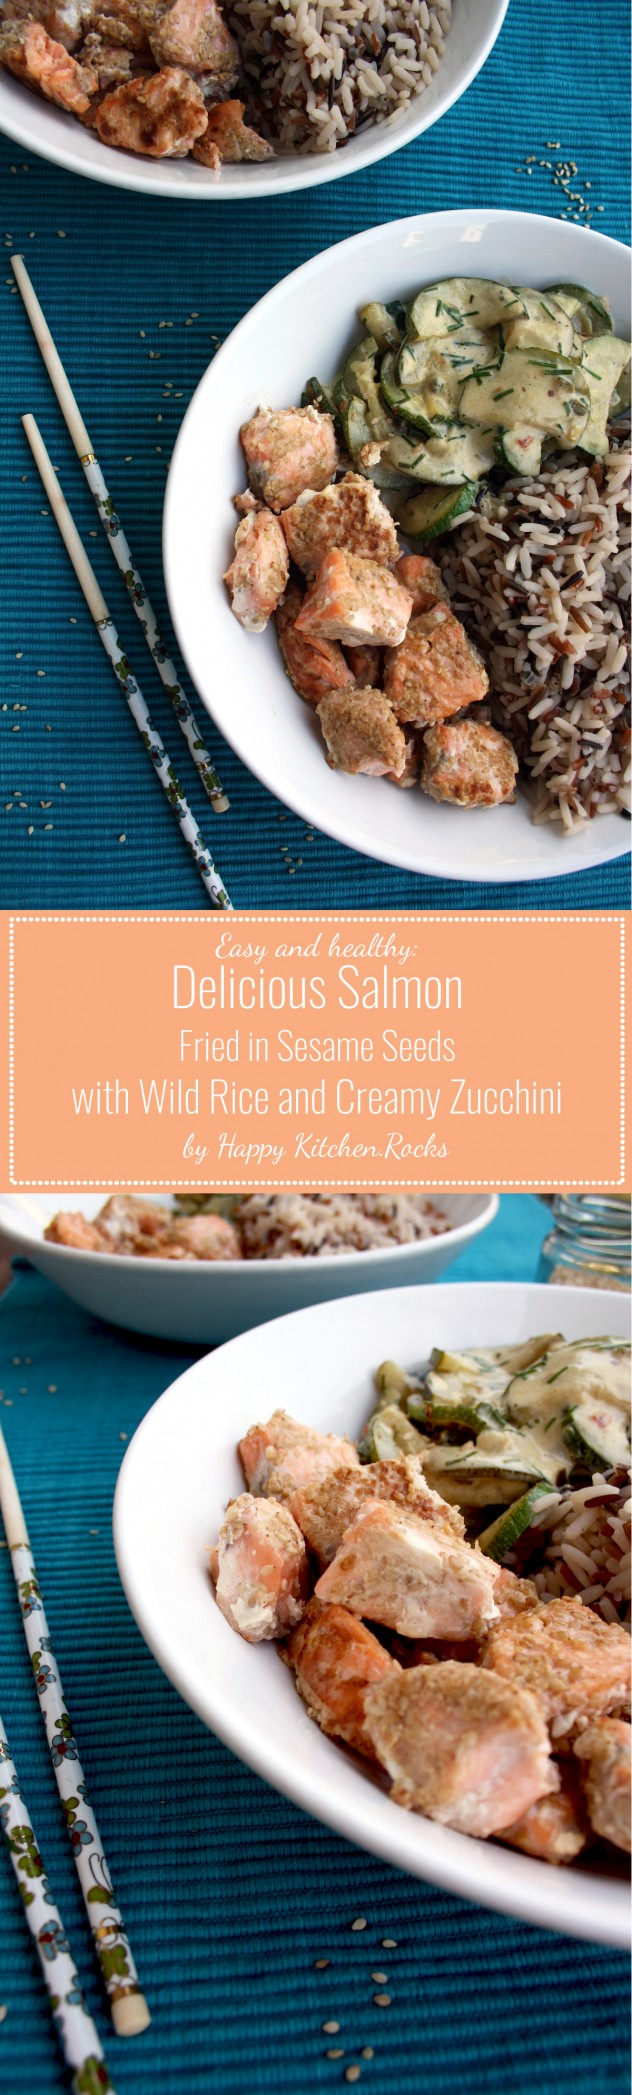 Sesame Salmon with Wild Rice and Creamy Zucchini: Easy to make and well-balanced 25 minutes Asian-style recipe. Low carb, gluten-free, healthy.